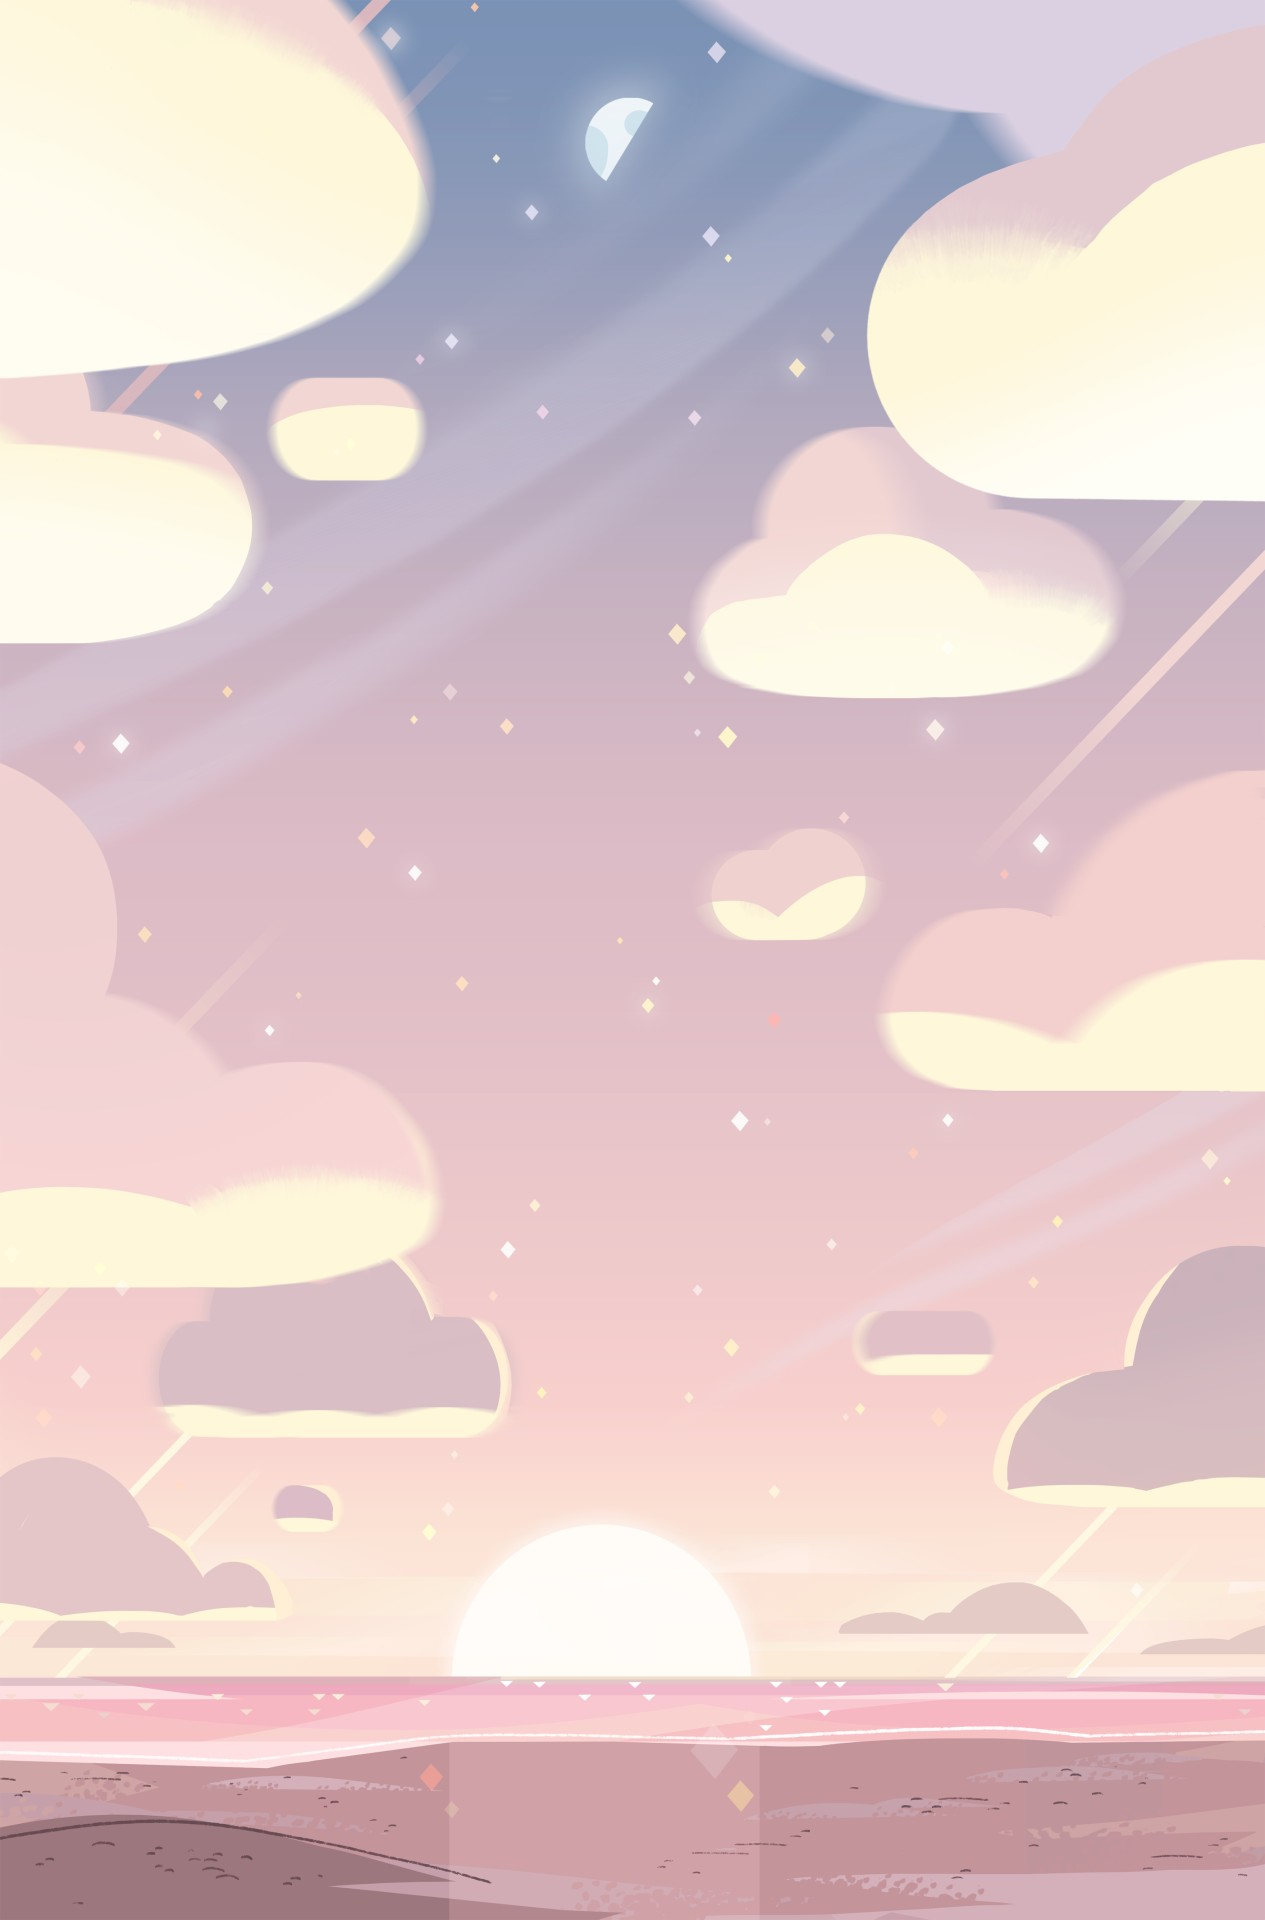 Steven Universe background Art ·① Download free awesome full HD wallpapers for desktop, mobile